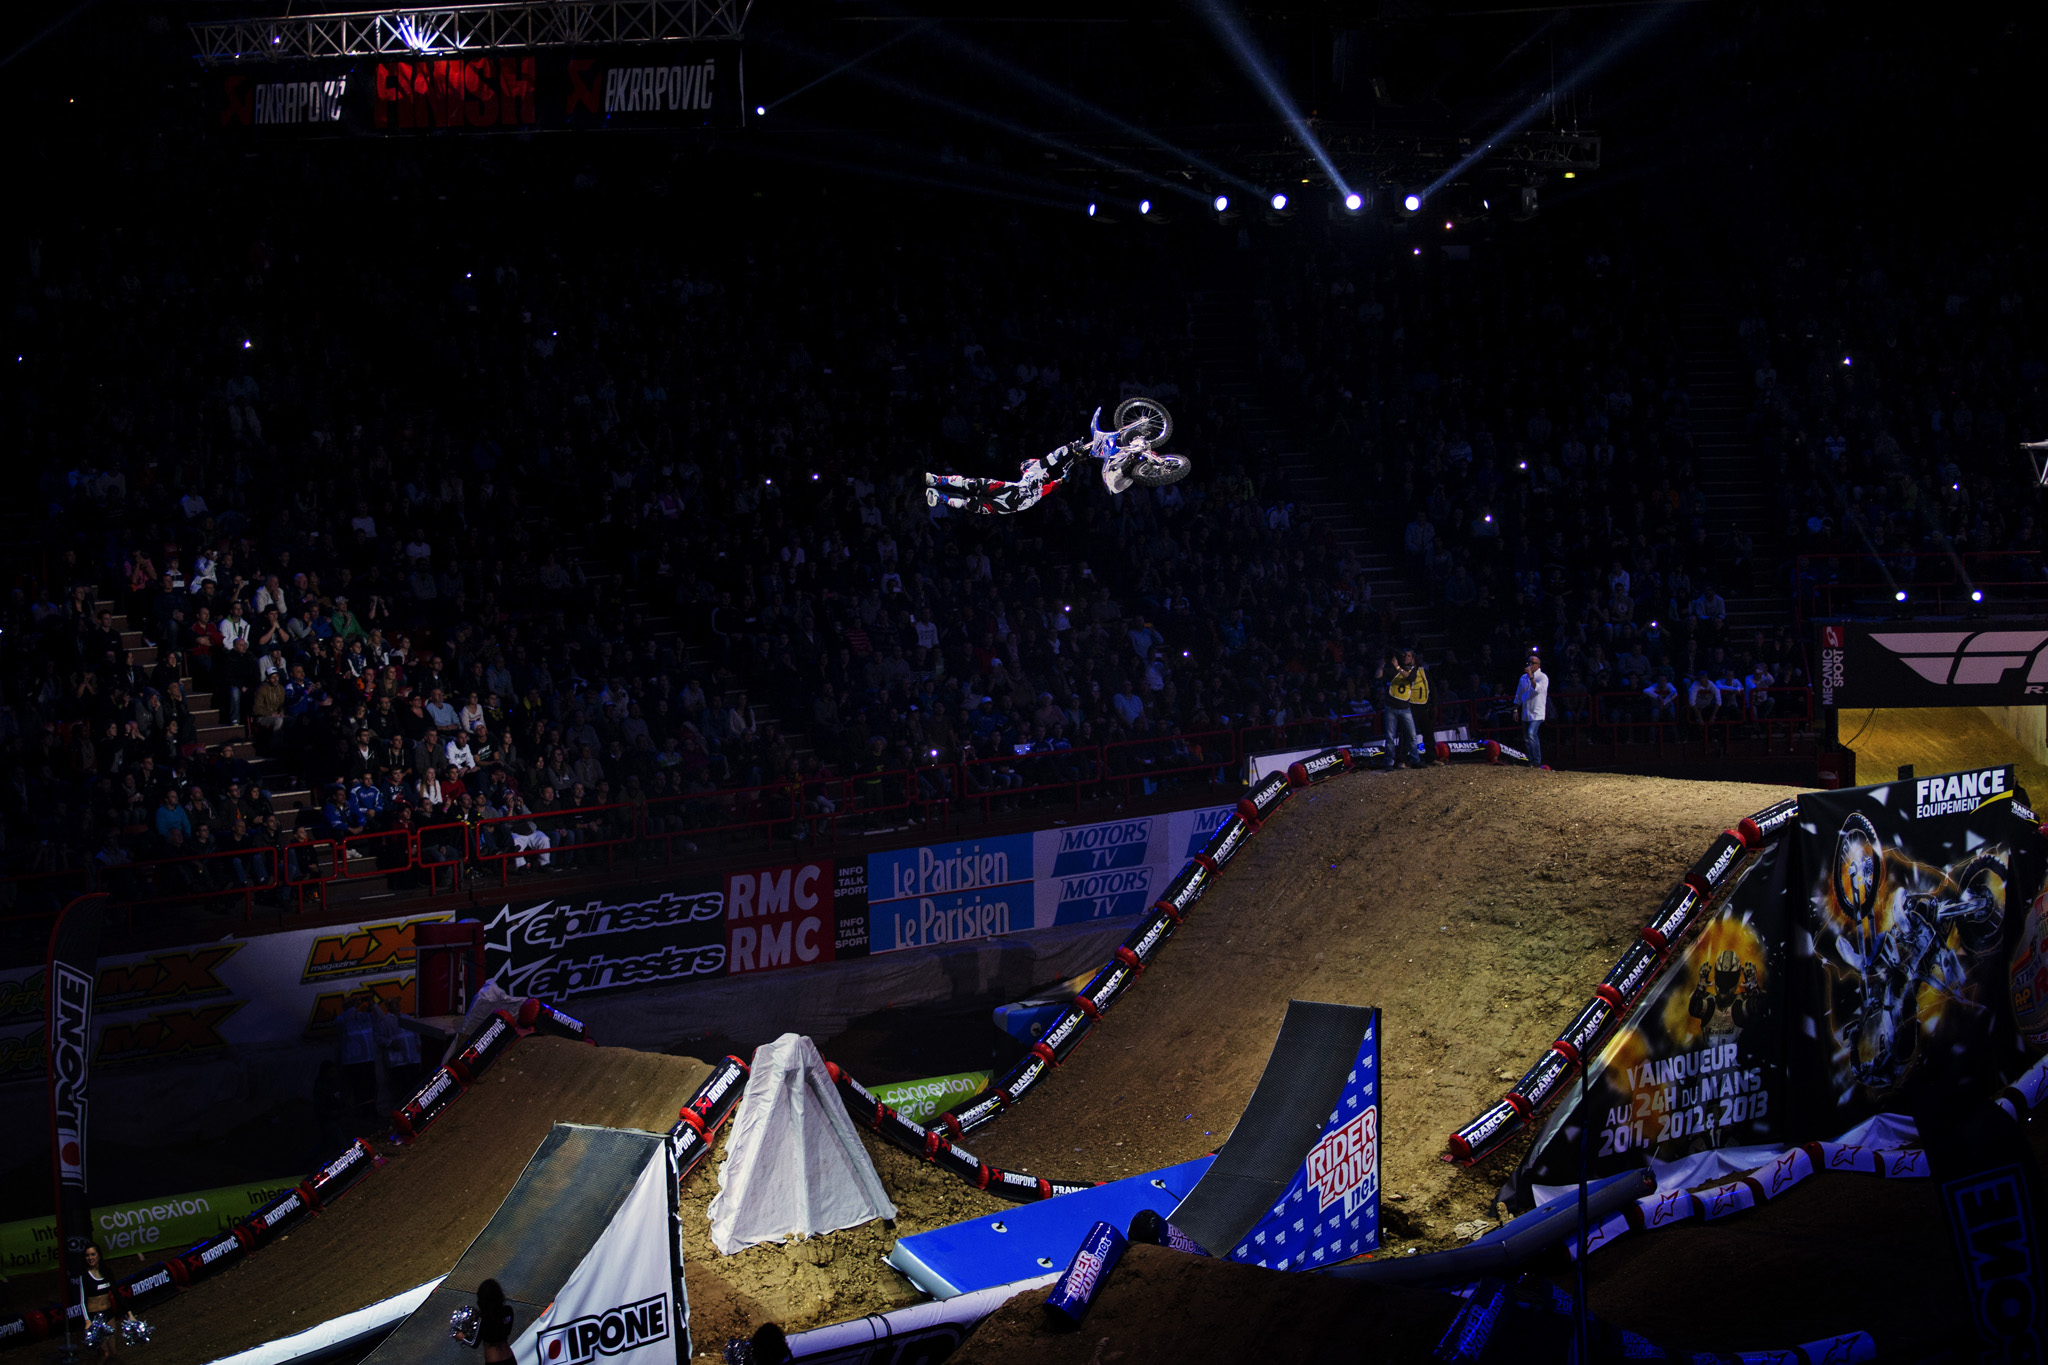 Thomas Pags gets full extension on this air in front of his home-country fans in Paris at the Bercy Supercross.